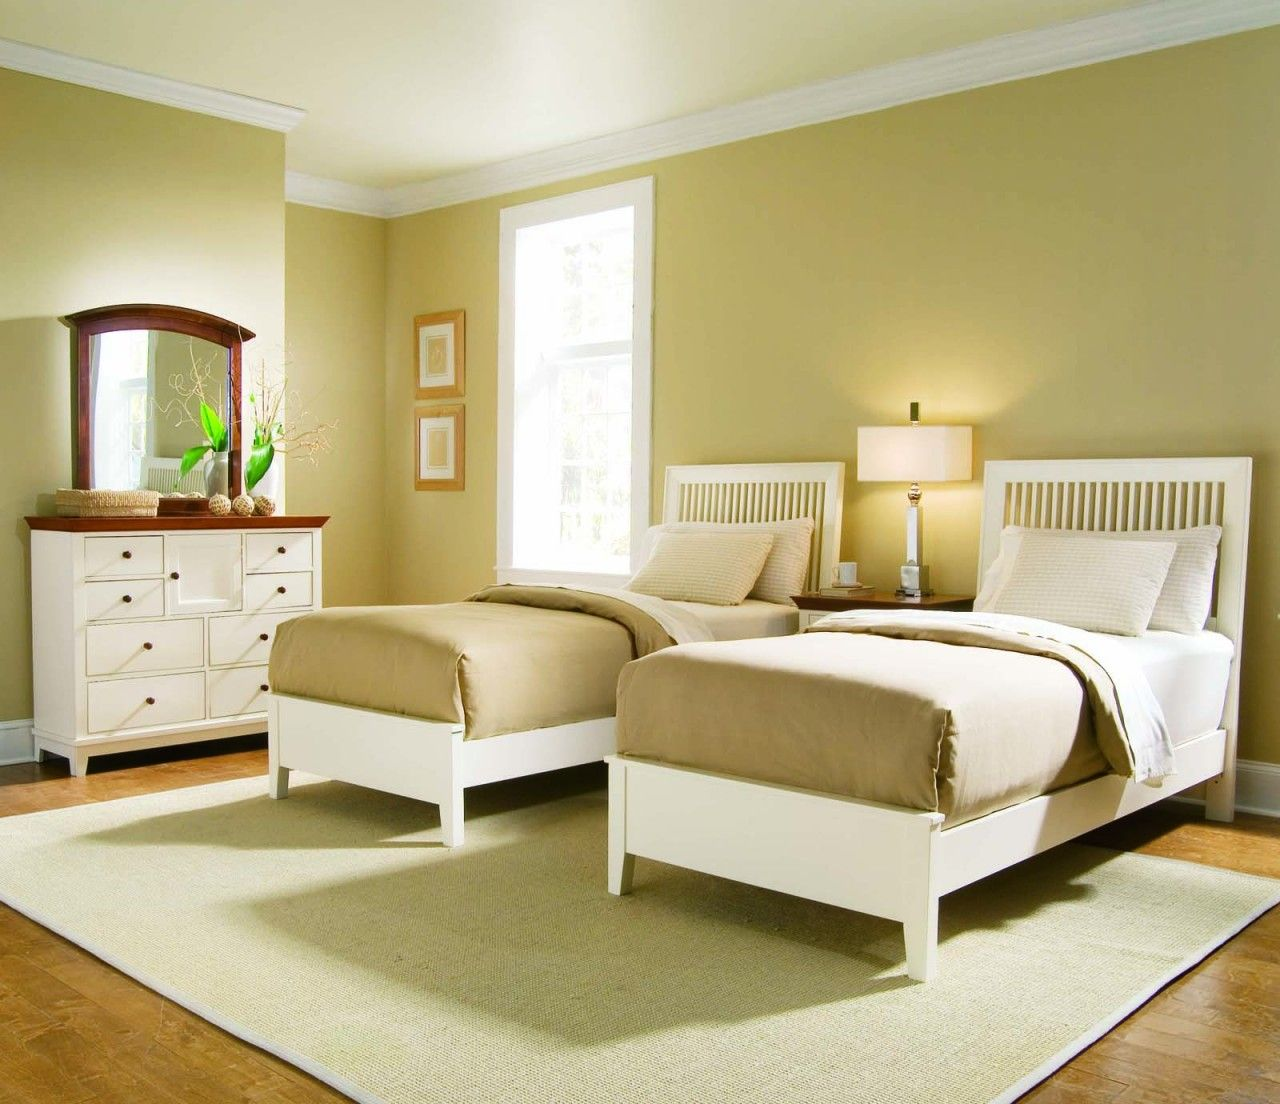 Girly Twin Bedroom Set Idea With Pretty White Sleigh Bed And Two